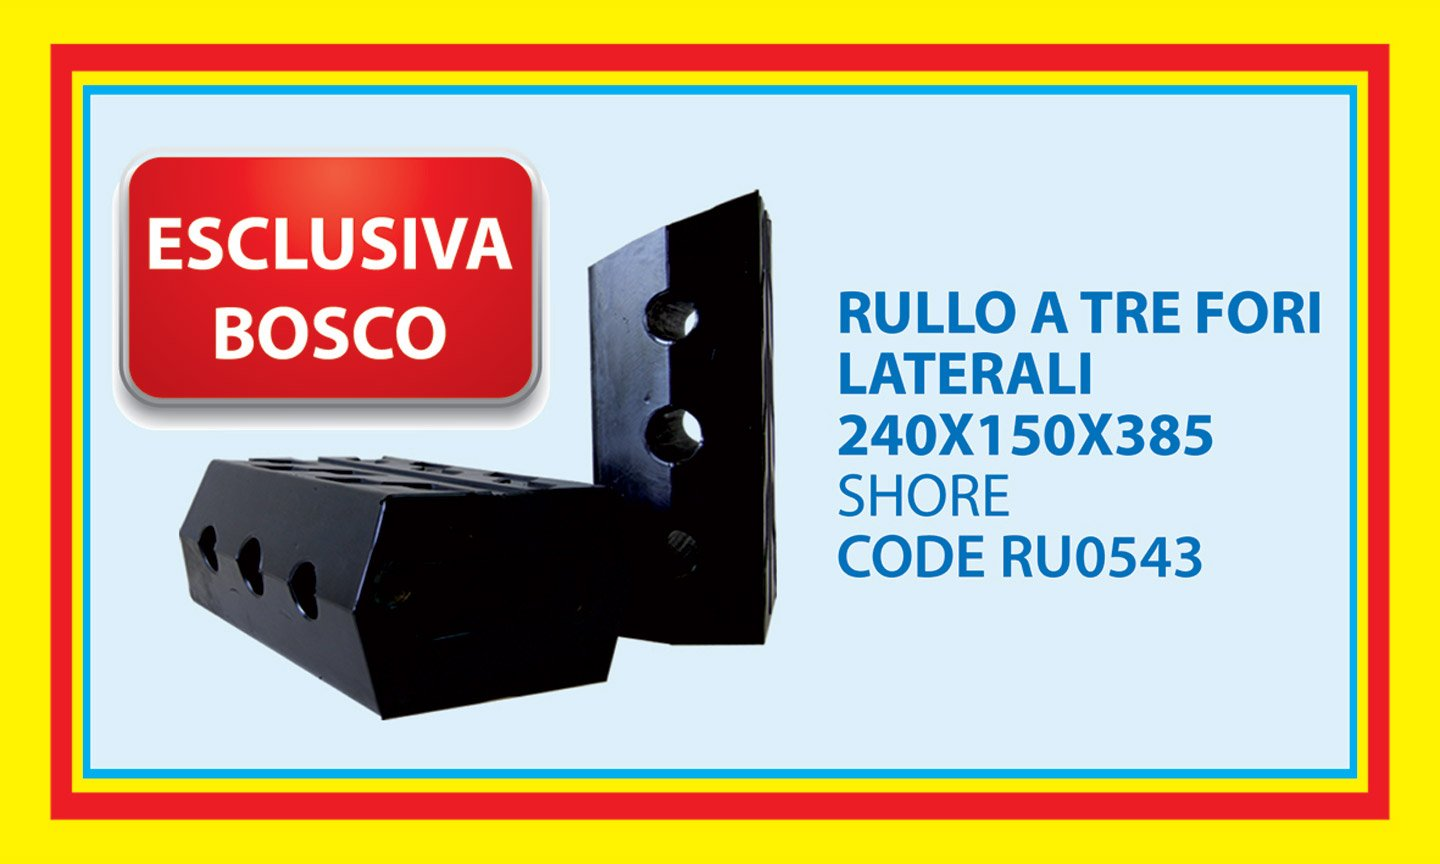 Exclusively from Bosco - roll with three lateral holes 240X150X385